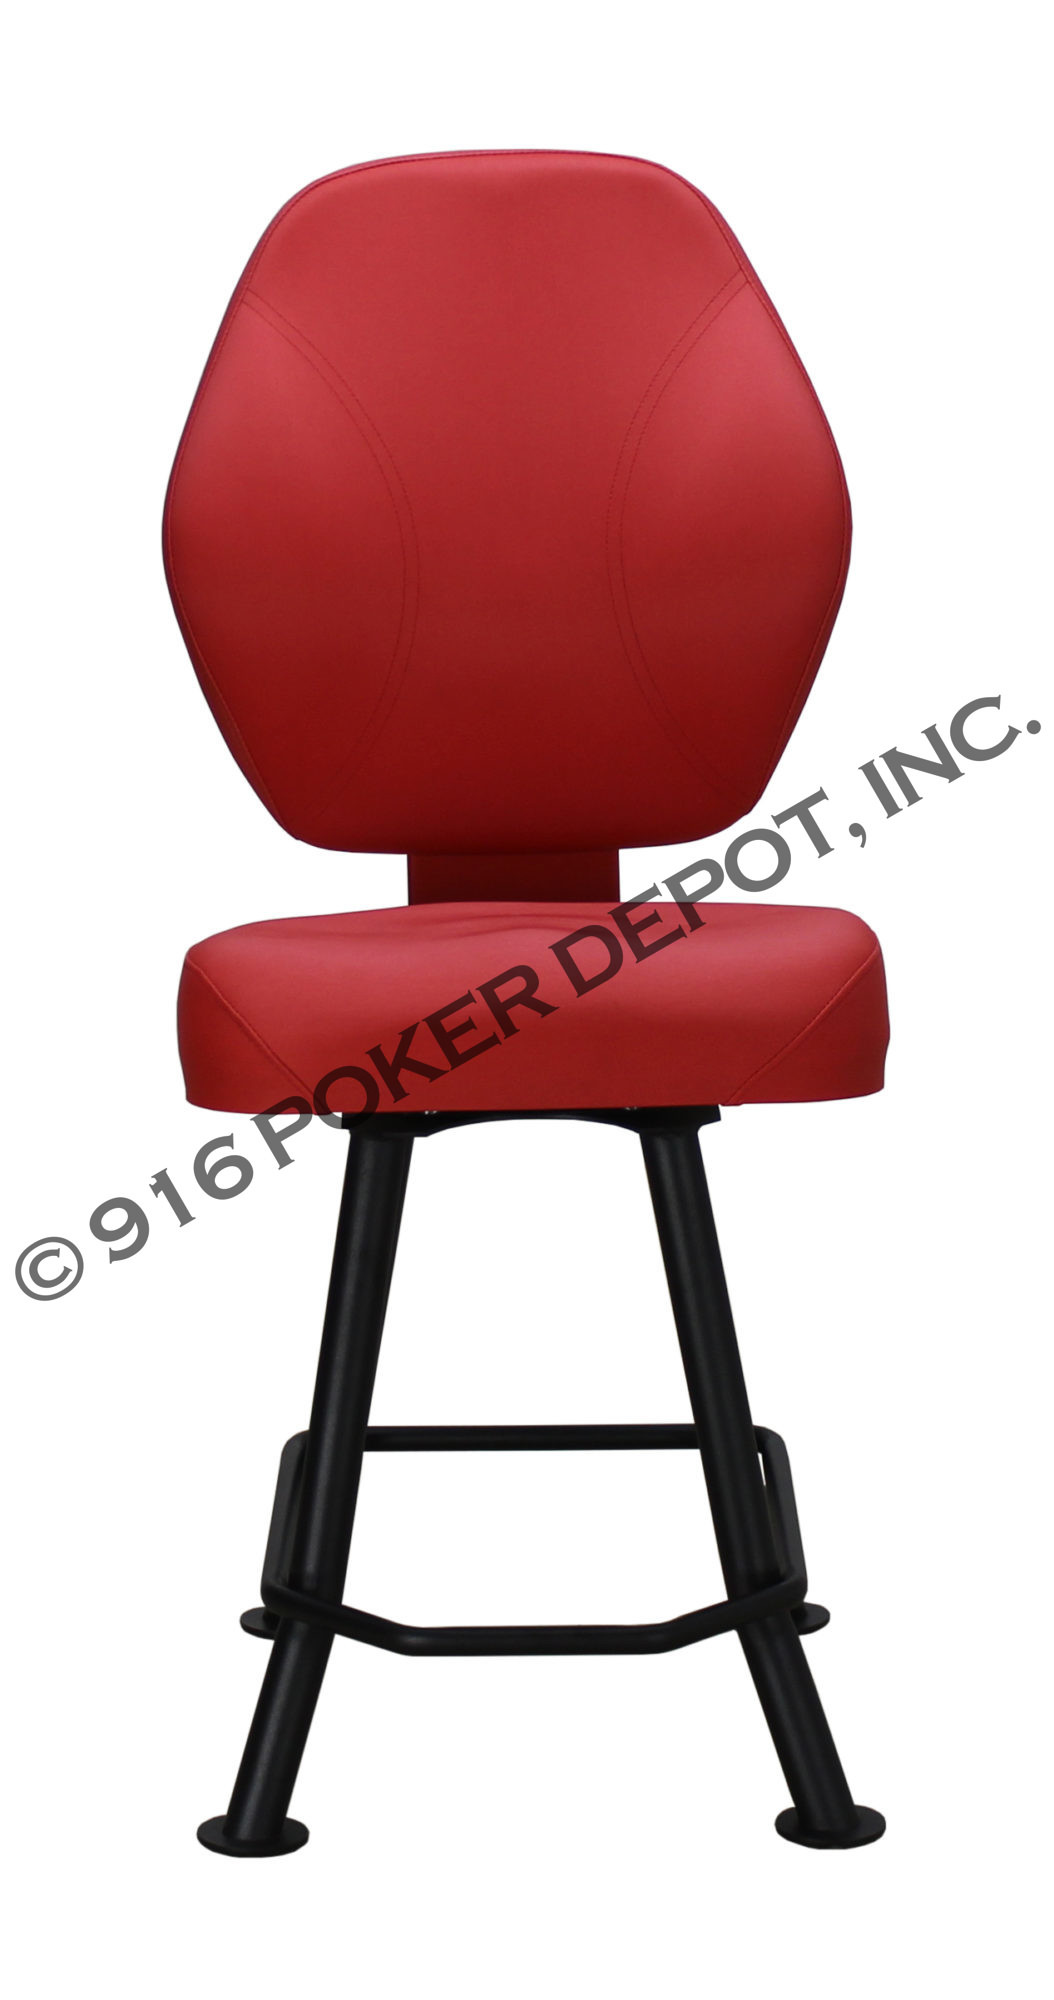 The Monte Carlo Blackjack & Slot Stool